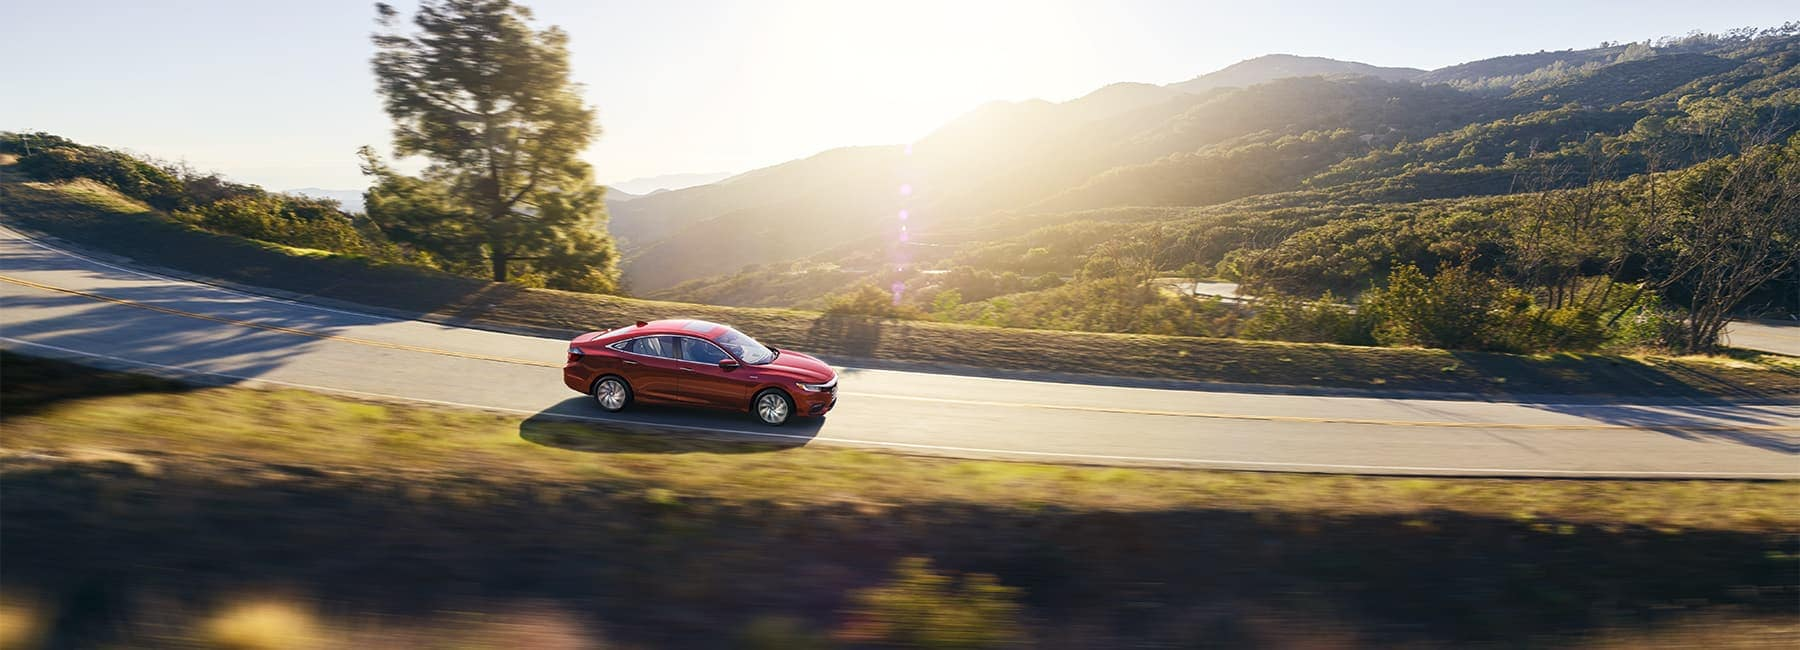 2021 honda insight driving in the mountains